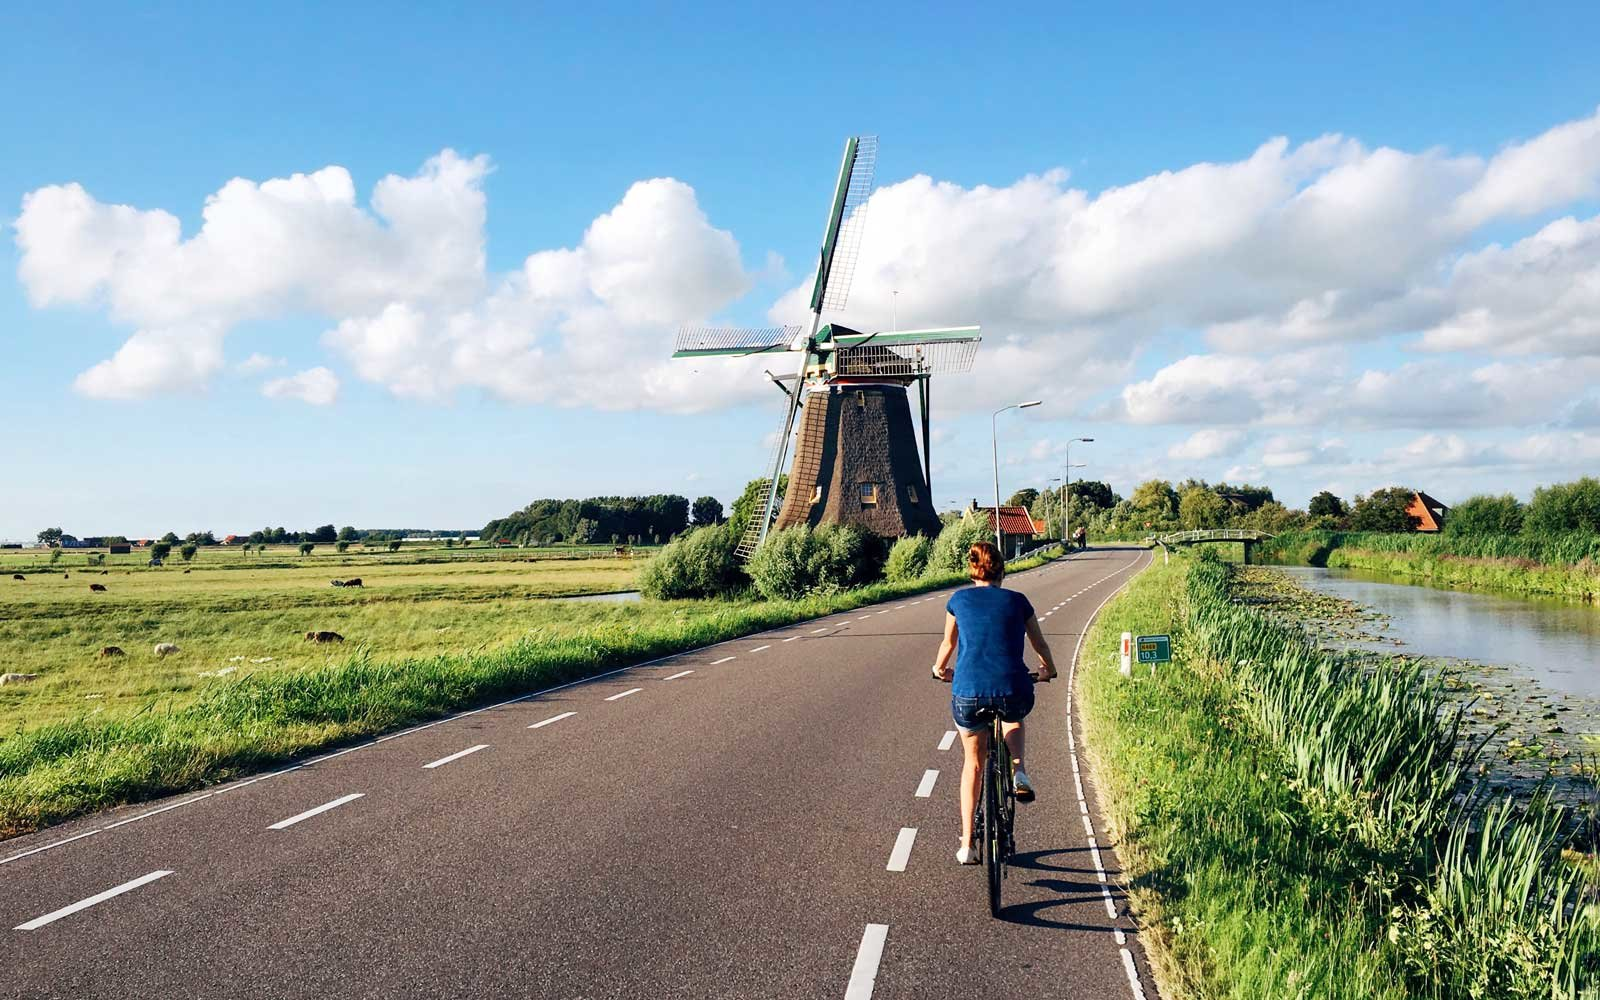 Windmill and Bicycle in the Netherlands